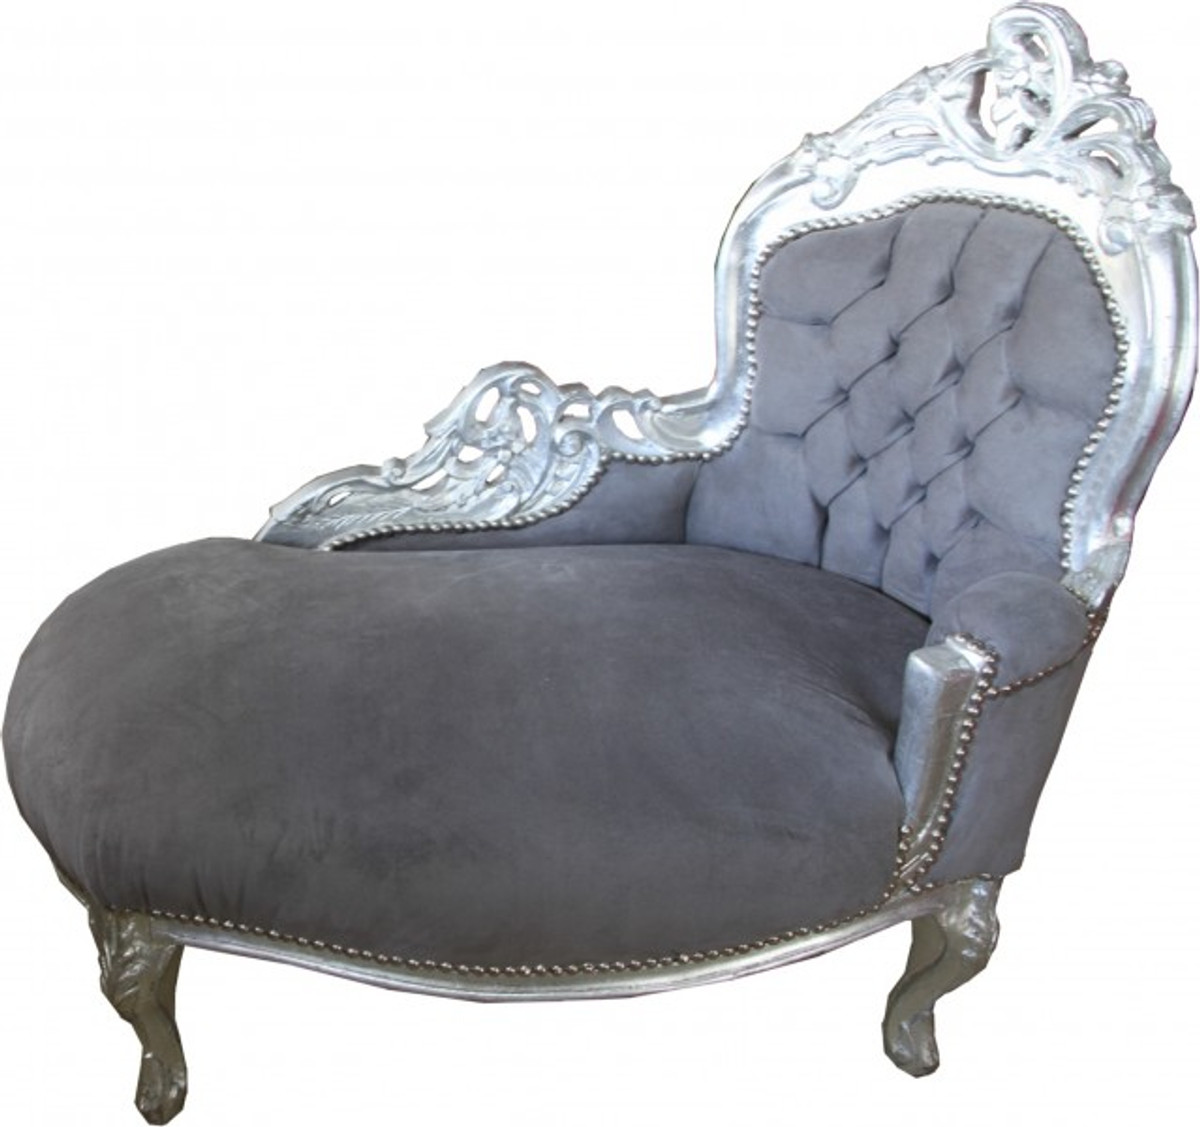 Casa padrino baroque kids chaise lounge grey silver for Chaise baroque avec accoudoir